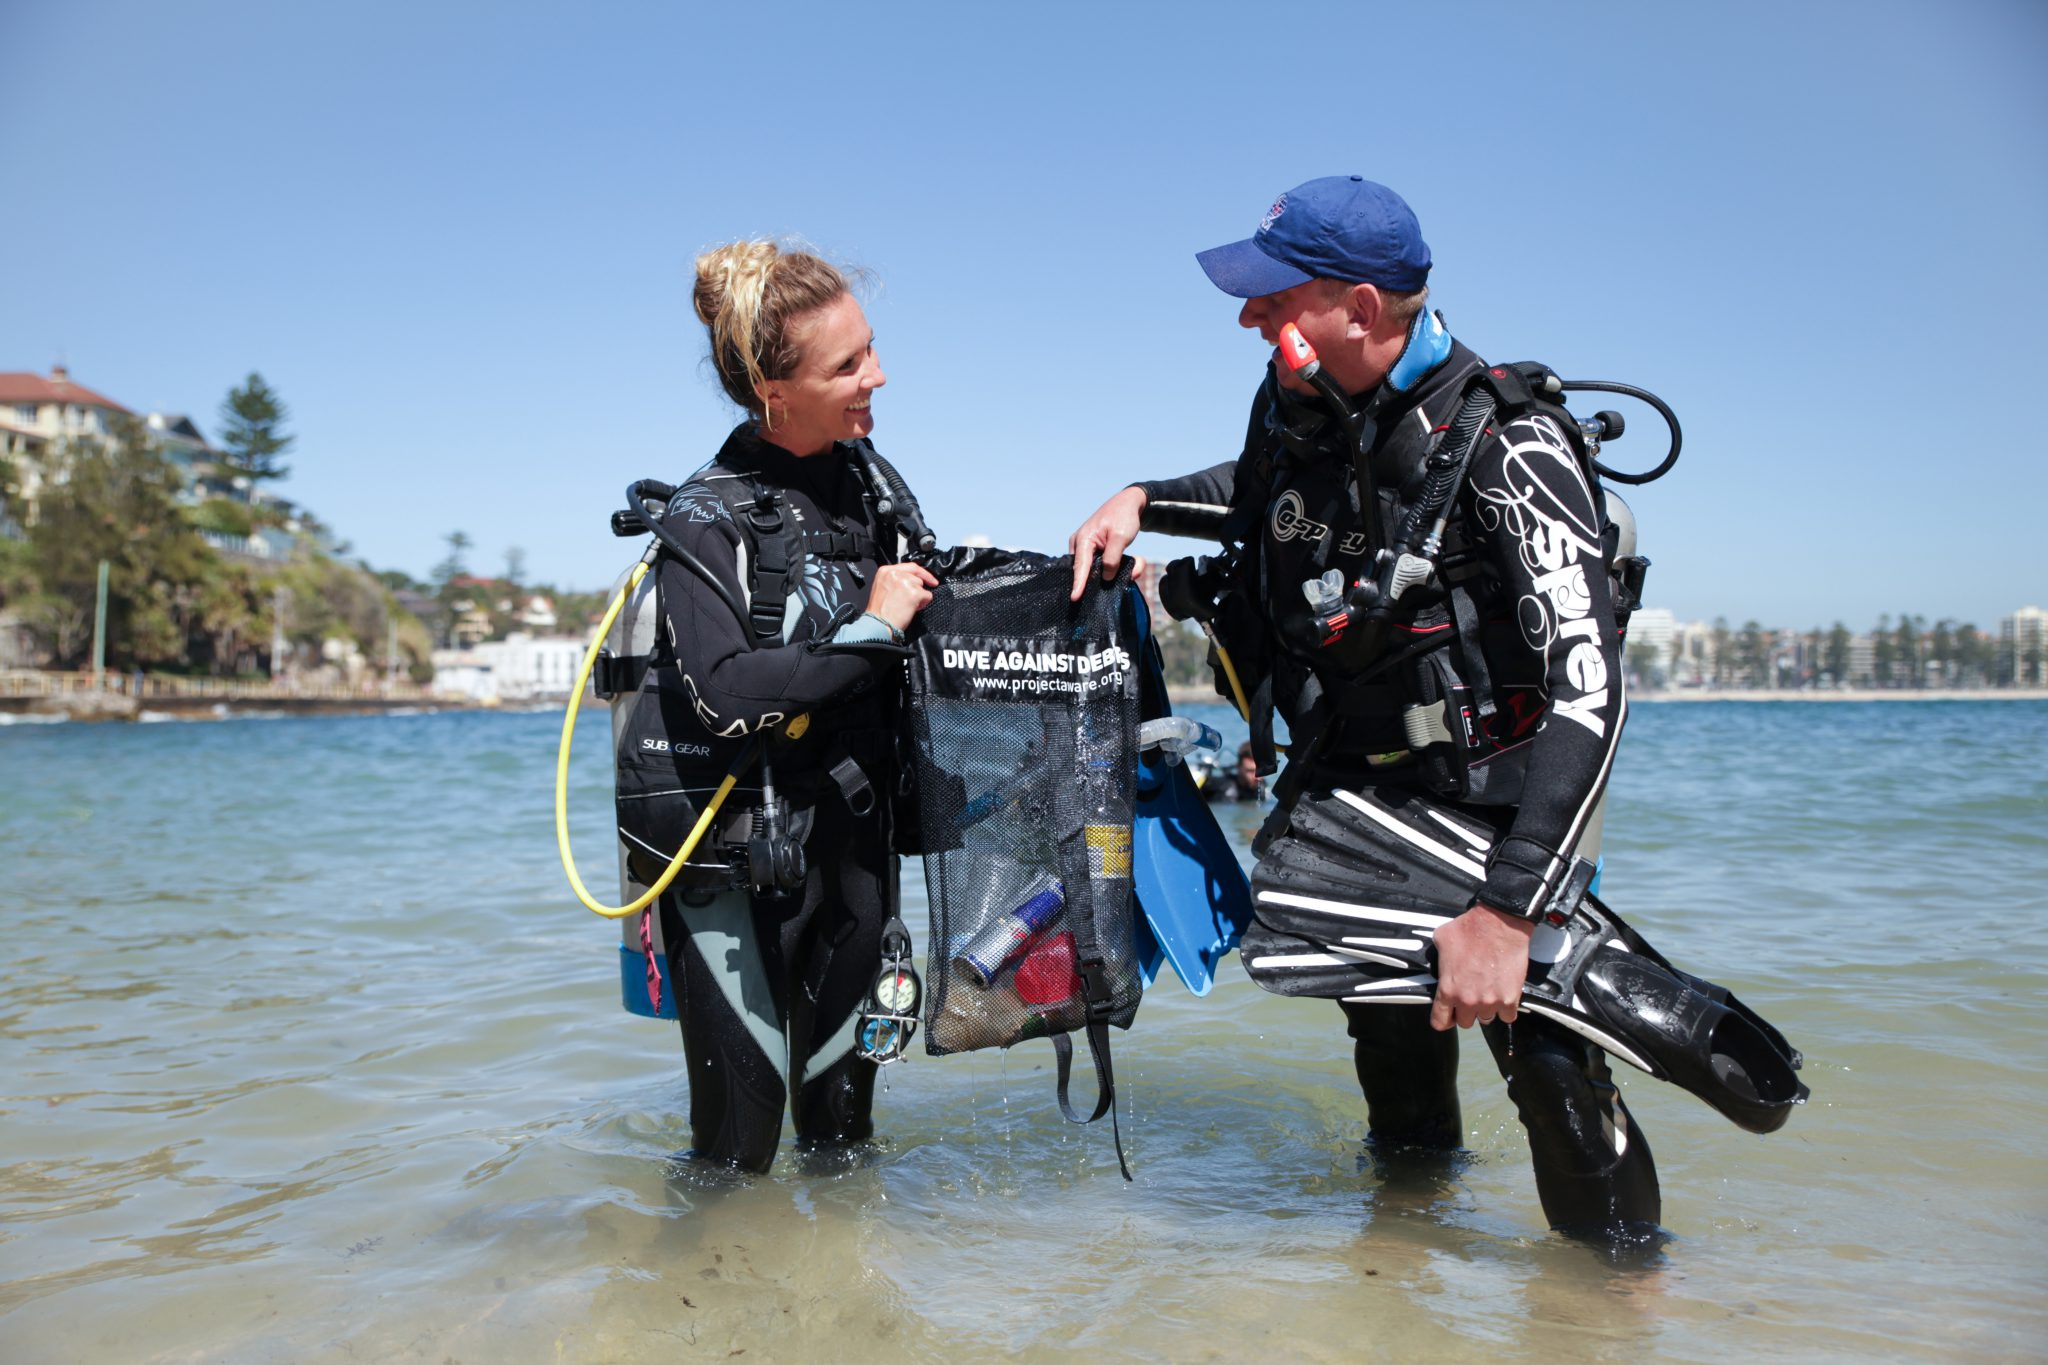 Project AWARE - Dive Against Debris - PADI - Shelly Beach - Australia